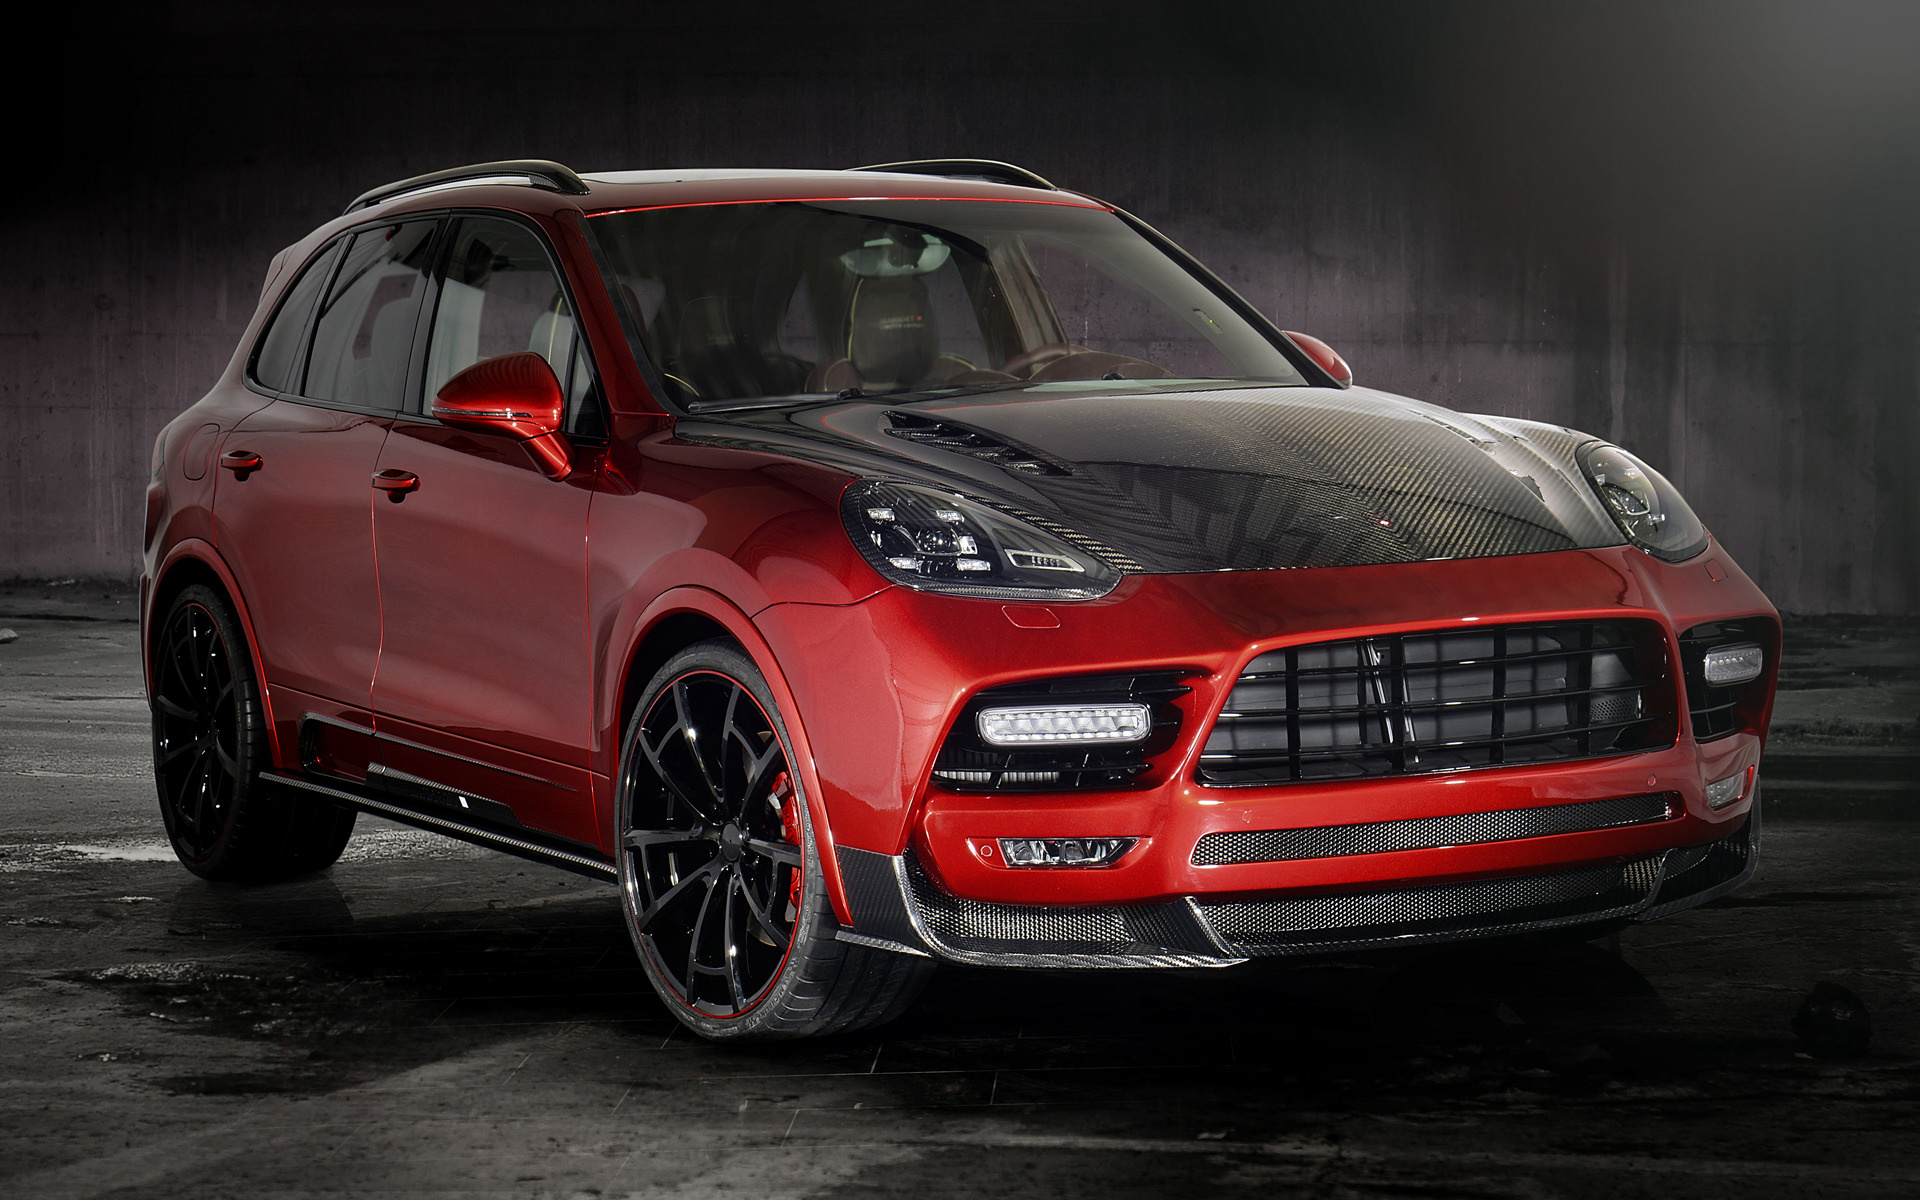 Porsche Cayenne Turbo By Mansory 2015 Wallpapers And Hd